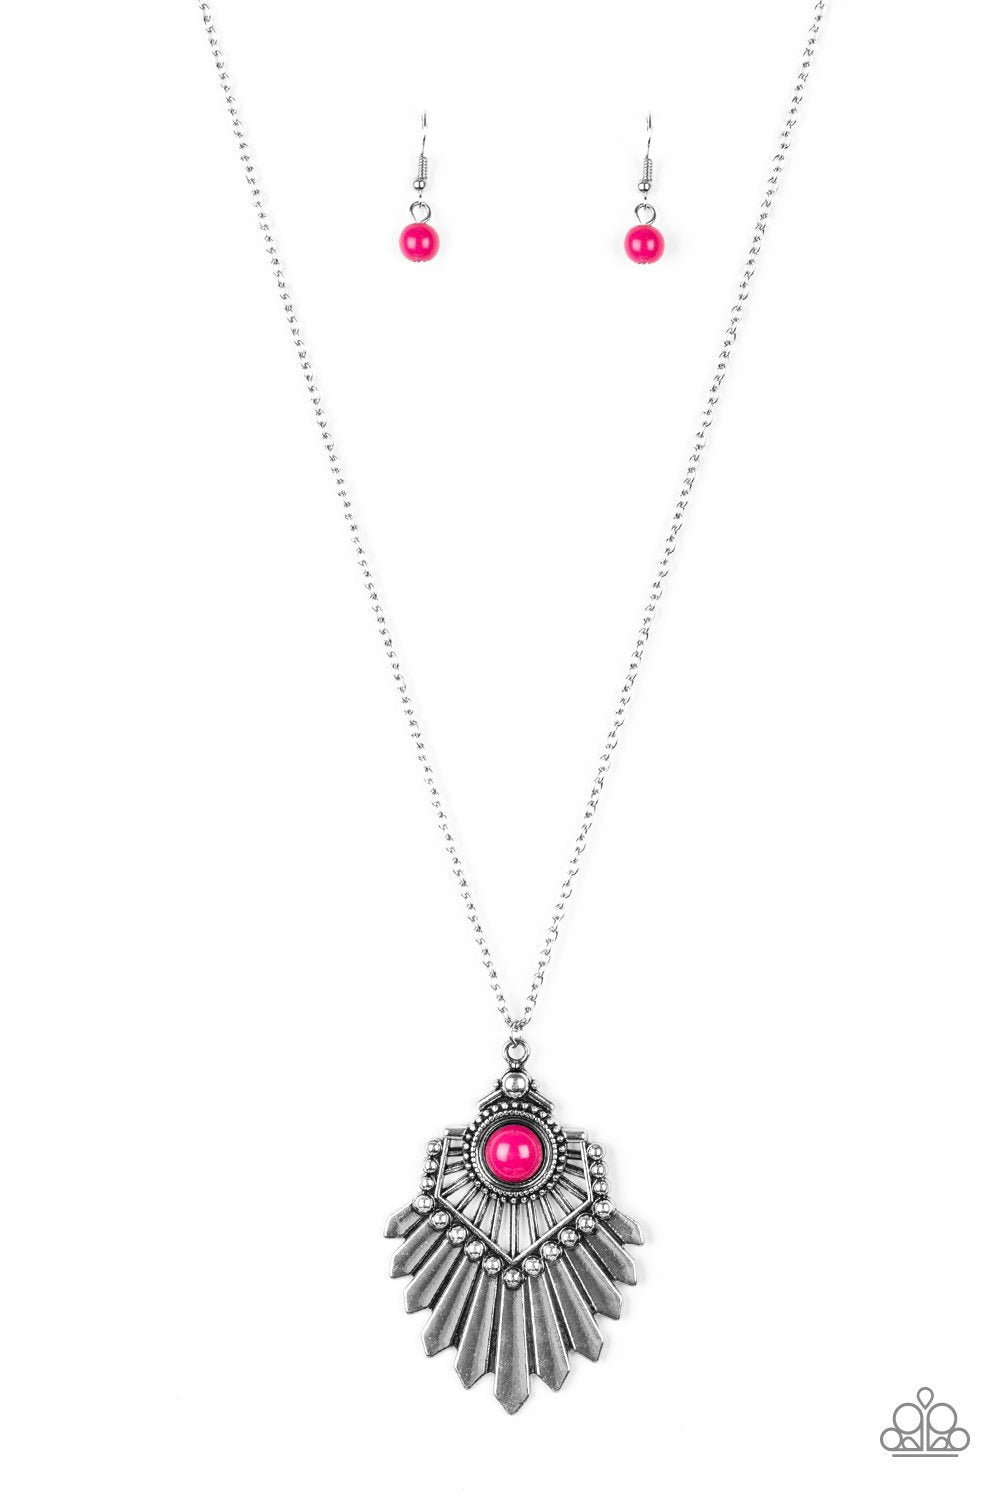 Inde-Pendant Idol Pink Necklace